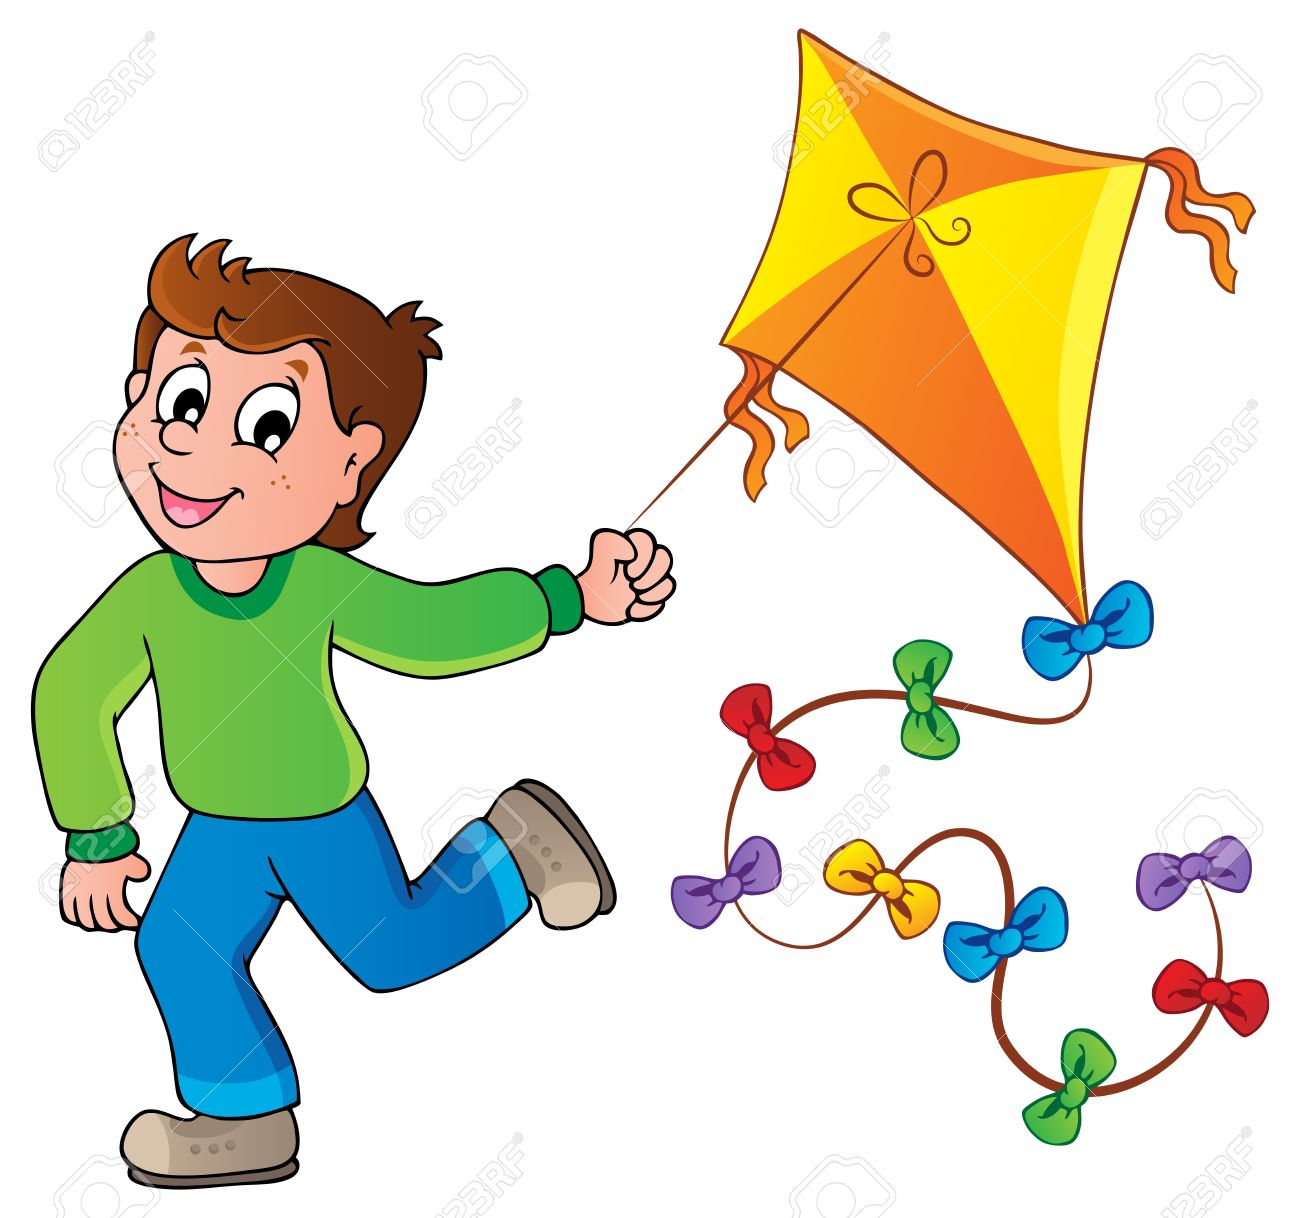 Kite clipart flying pictures on Cliparts Pub 2020! 🔝 (1300 x 1218 Pixel)